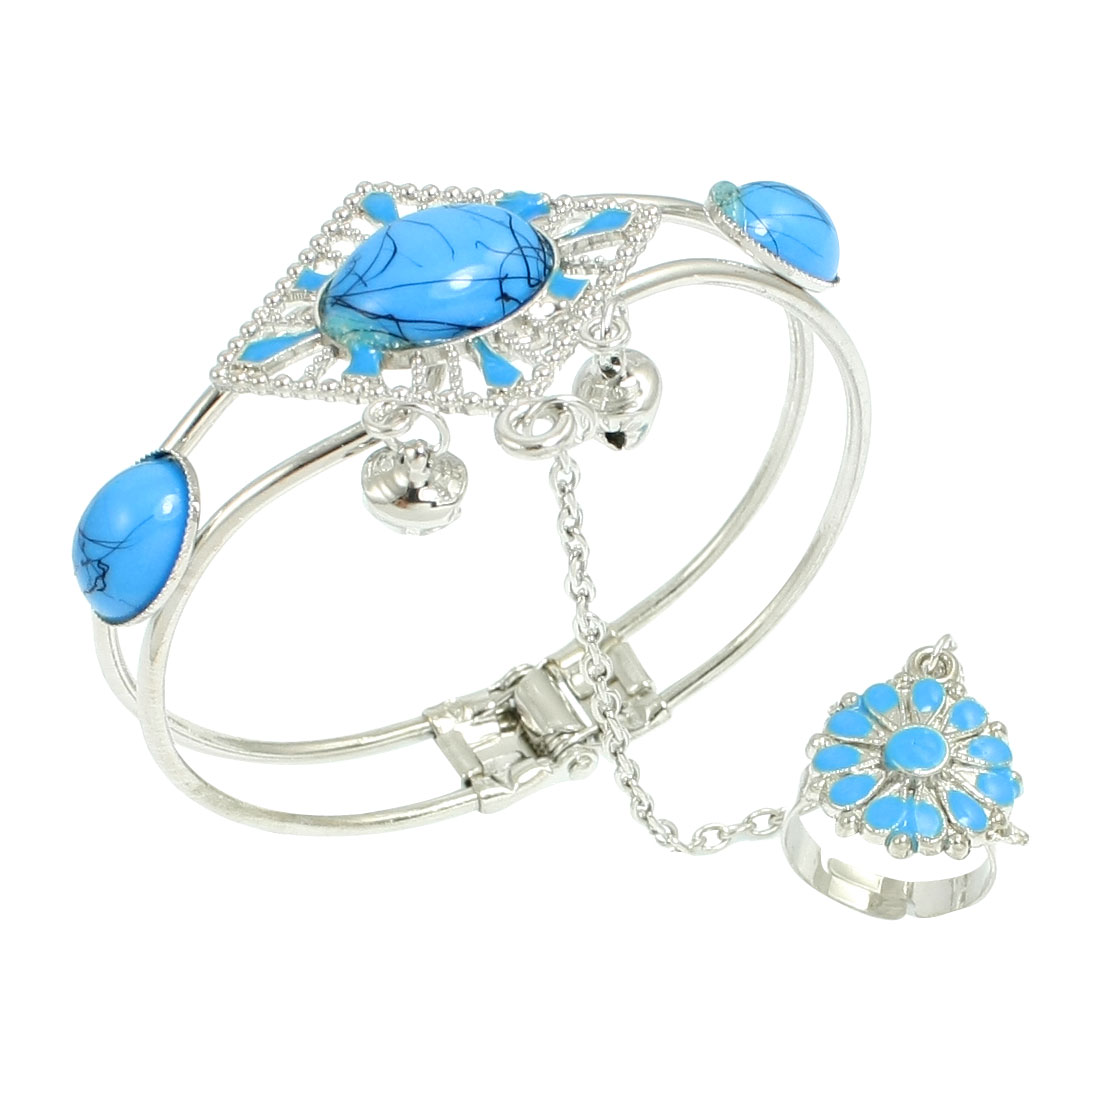 Rhombus Design Light Blue Beads Decor Finger Ring Bracelet